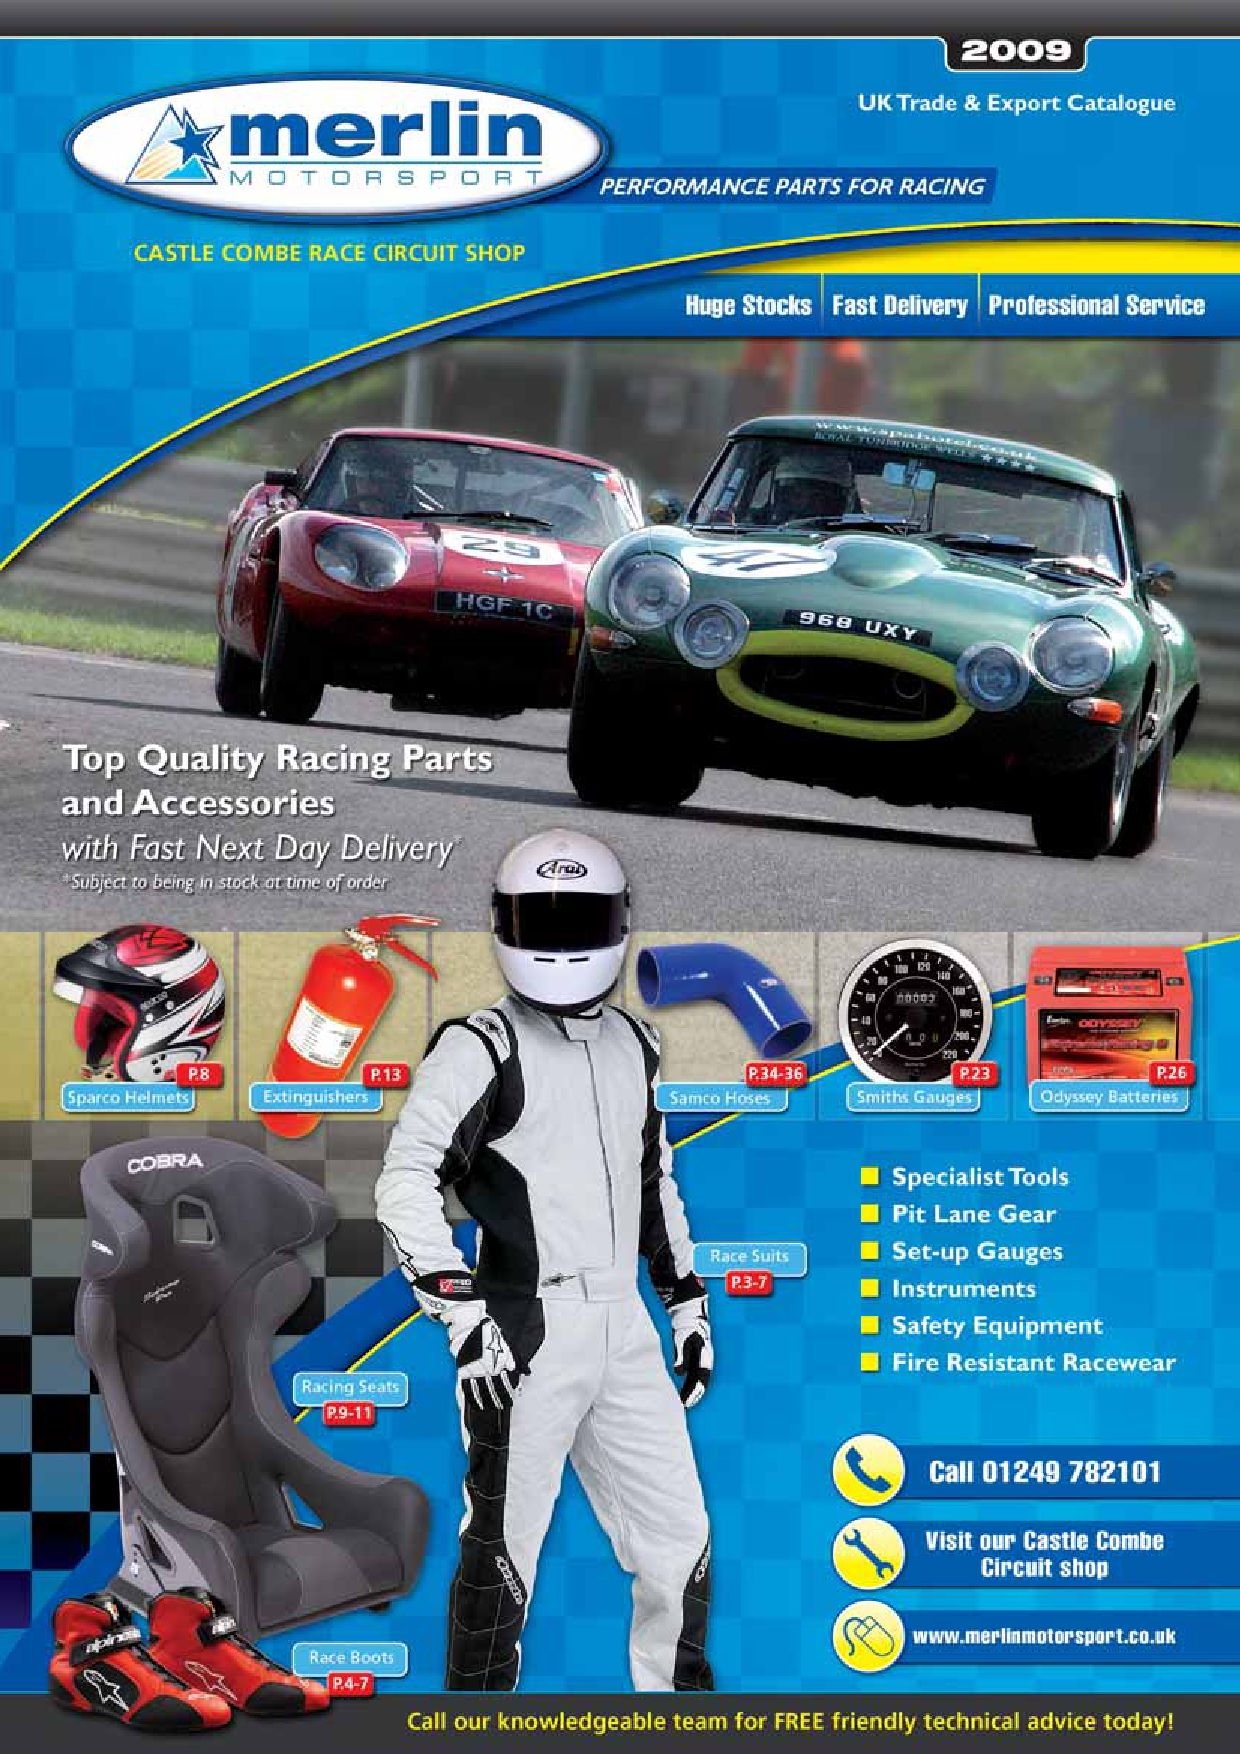 Merlin Motorsport Catalogue 2009 by Rob Smith - issuu